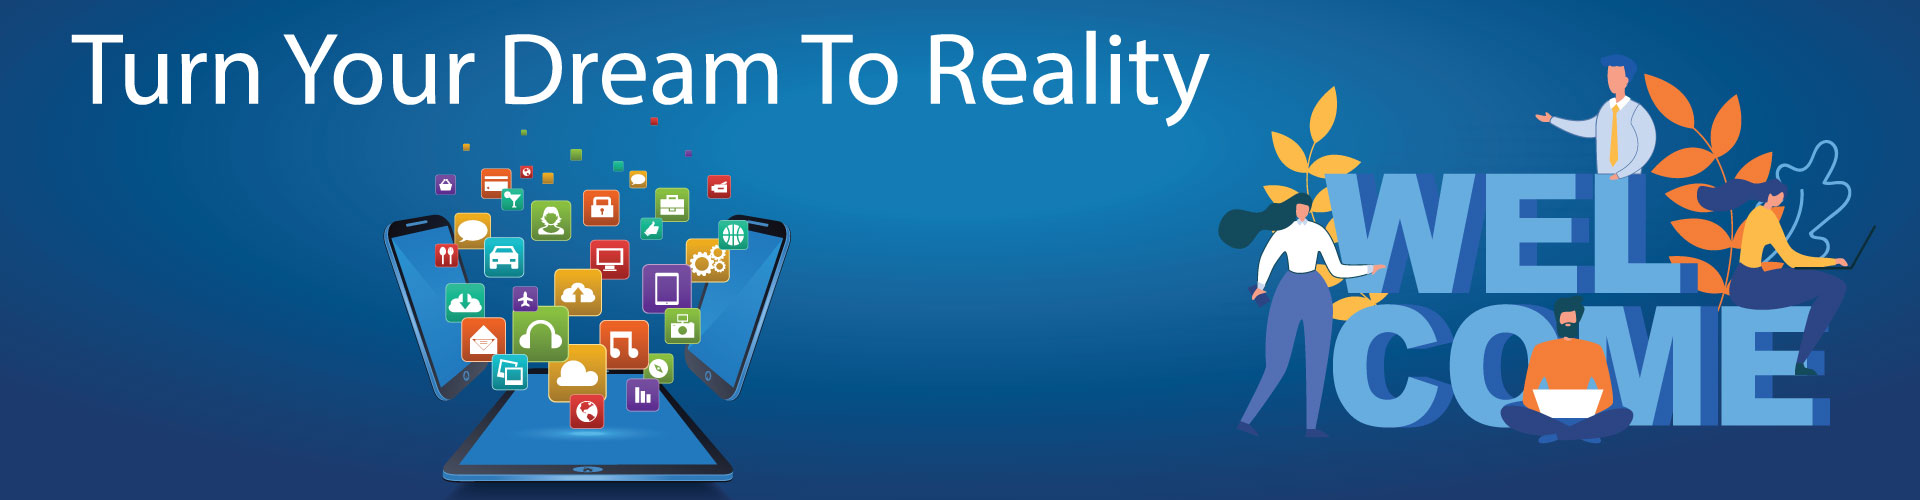 Turn Your Dream to Reality | KITS Online Trainings